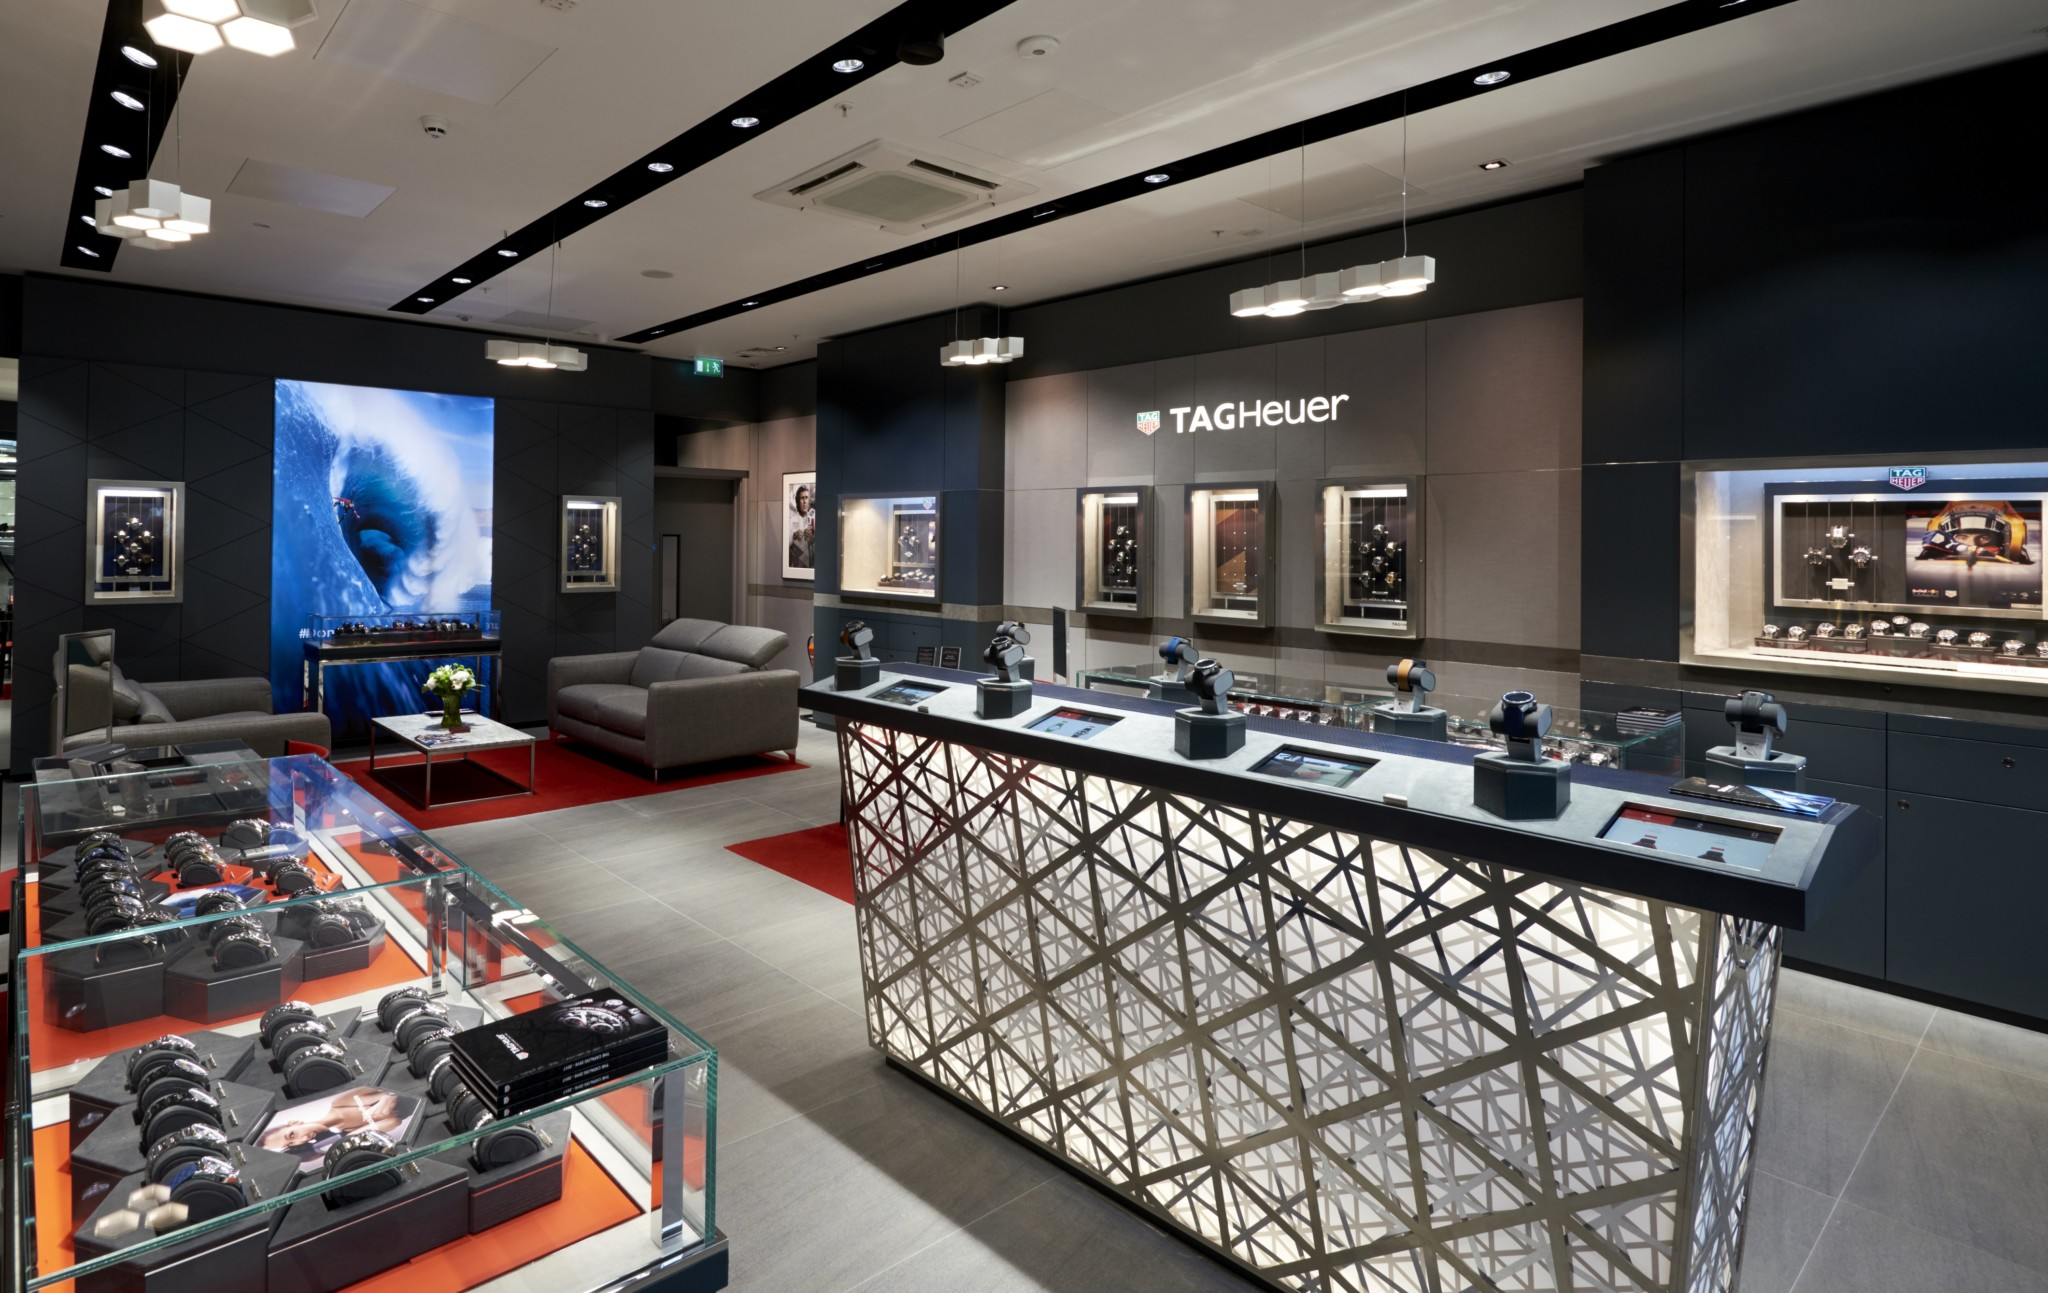 The brand new TAG Heuer boutique in Meadowhall